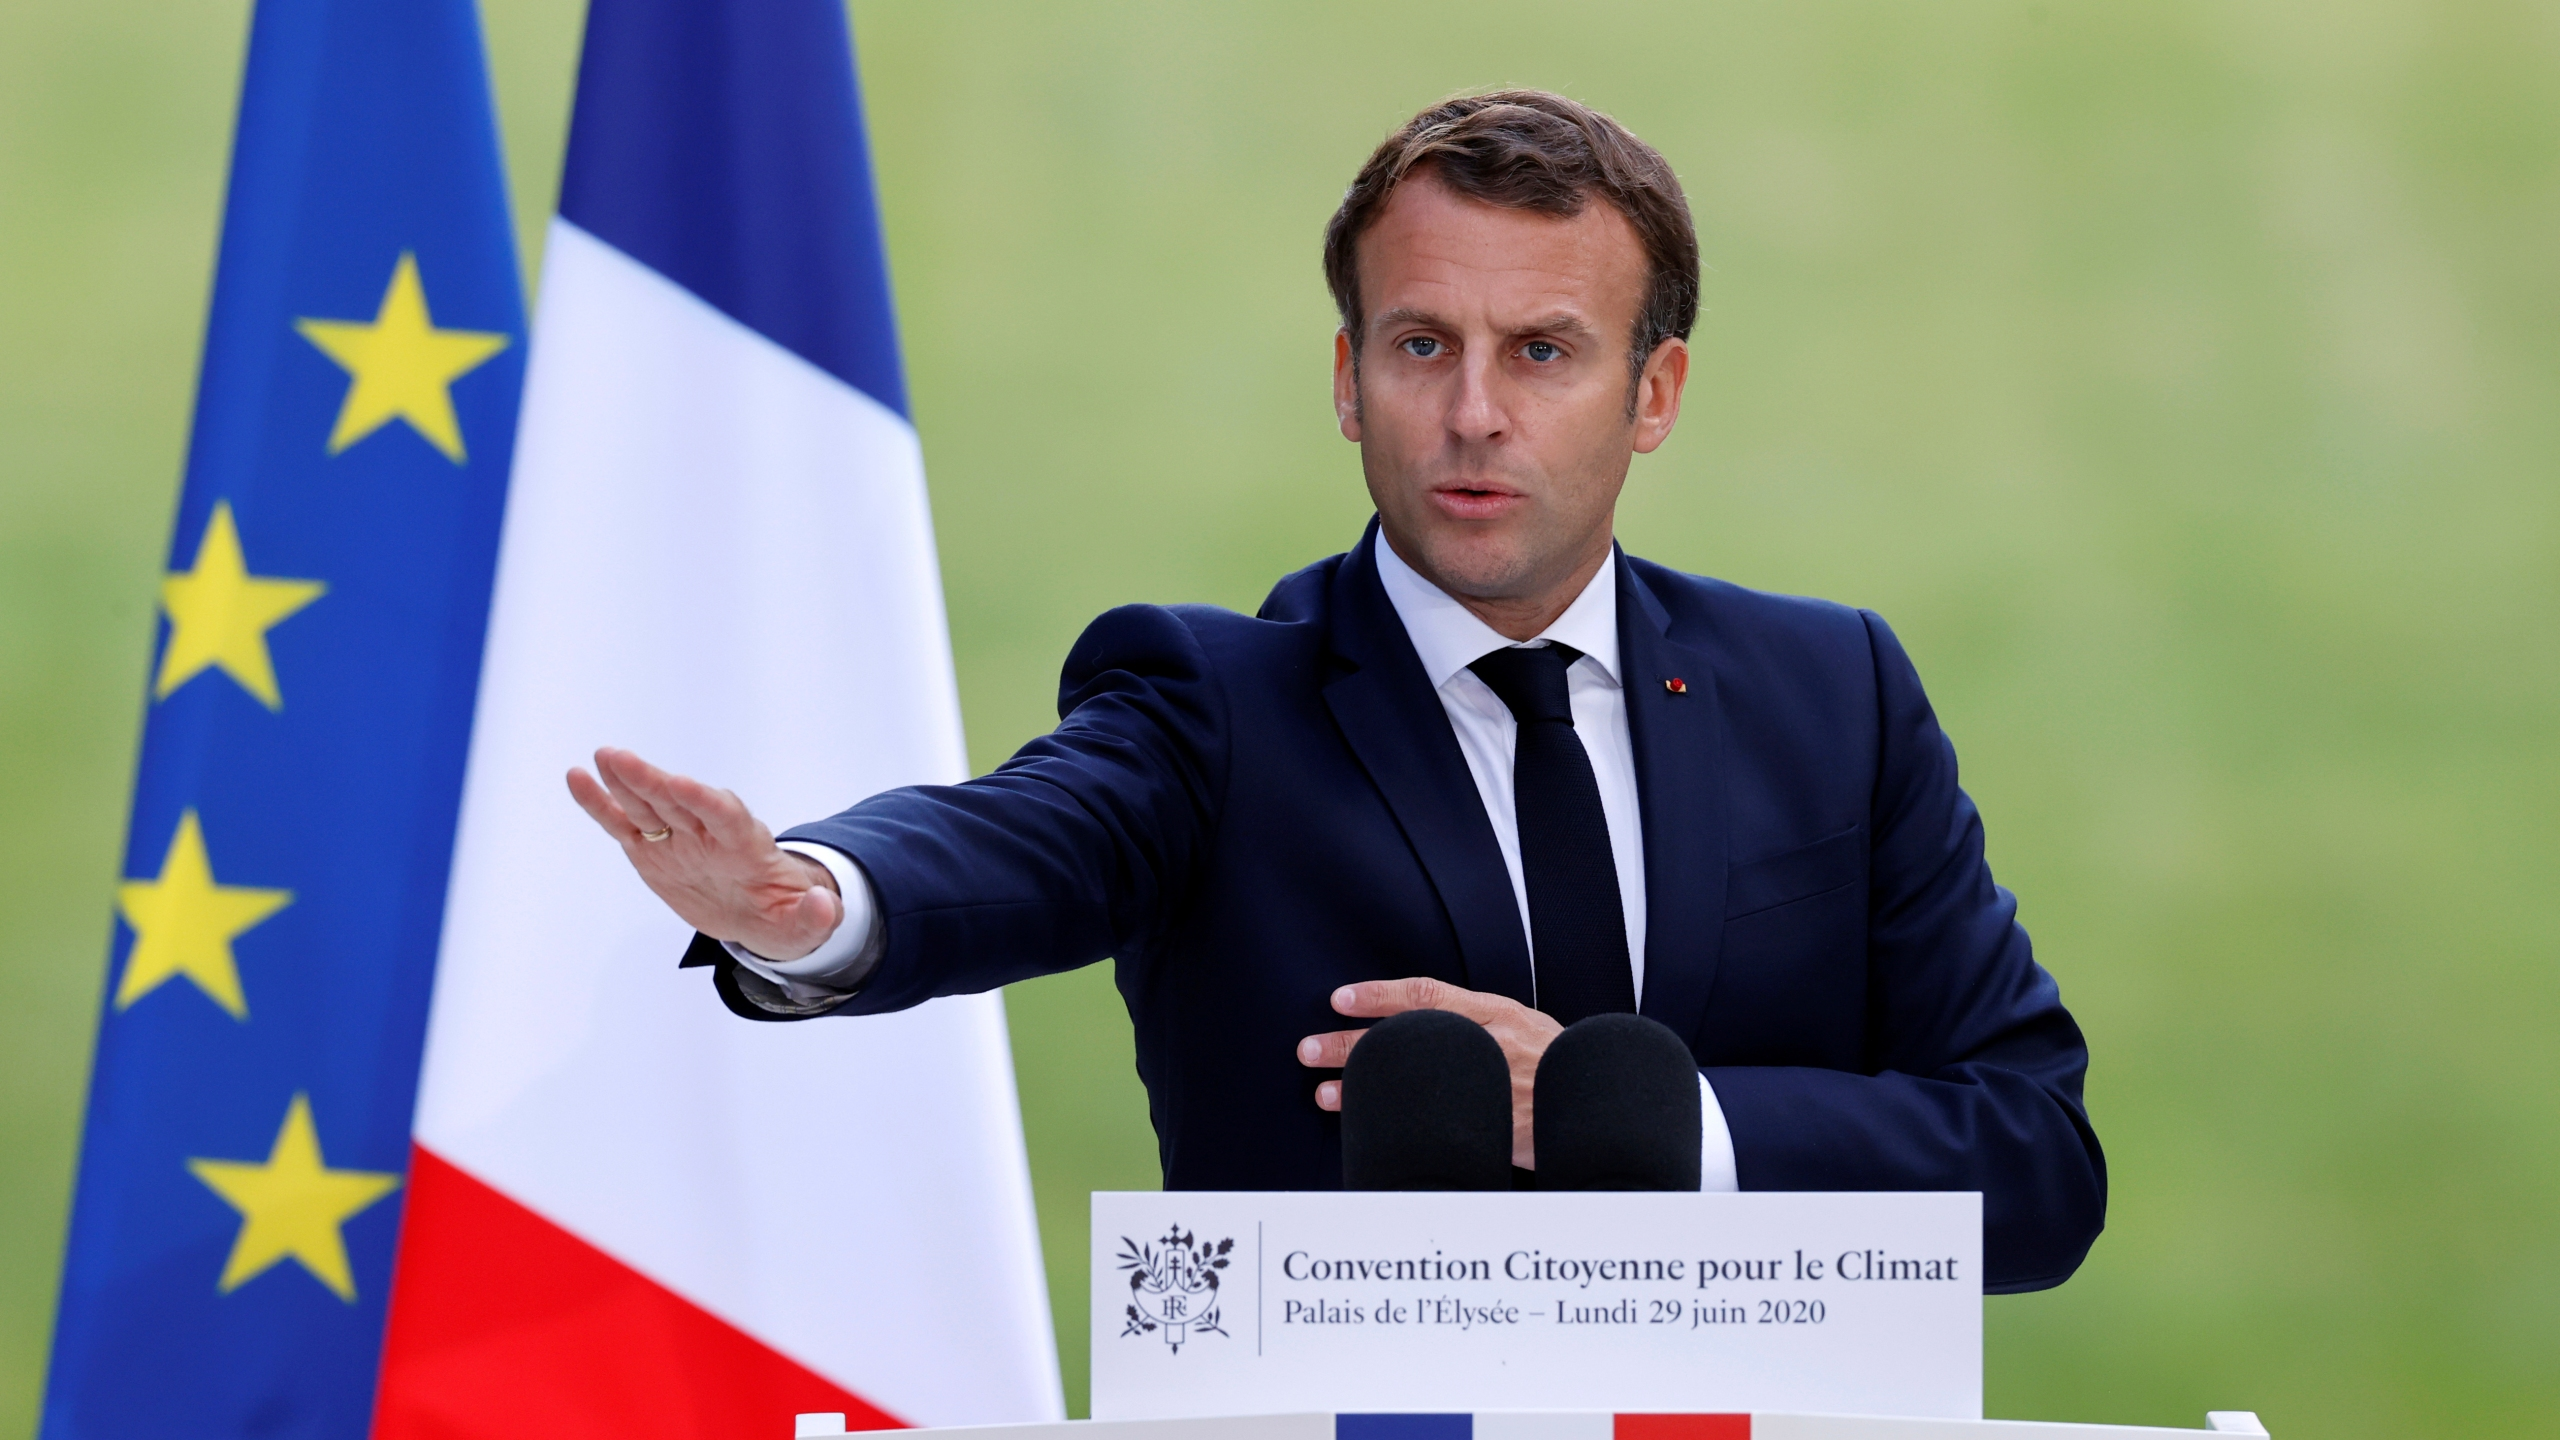 French President Emmanuel Macron meets French citizens' council over environment proposals in Paris